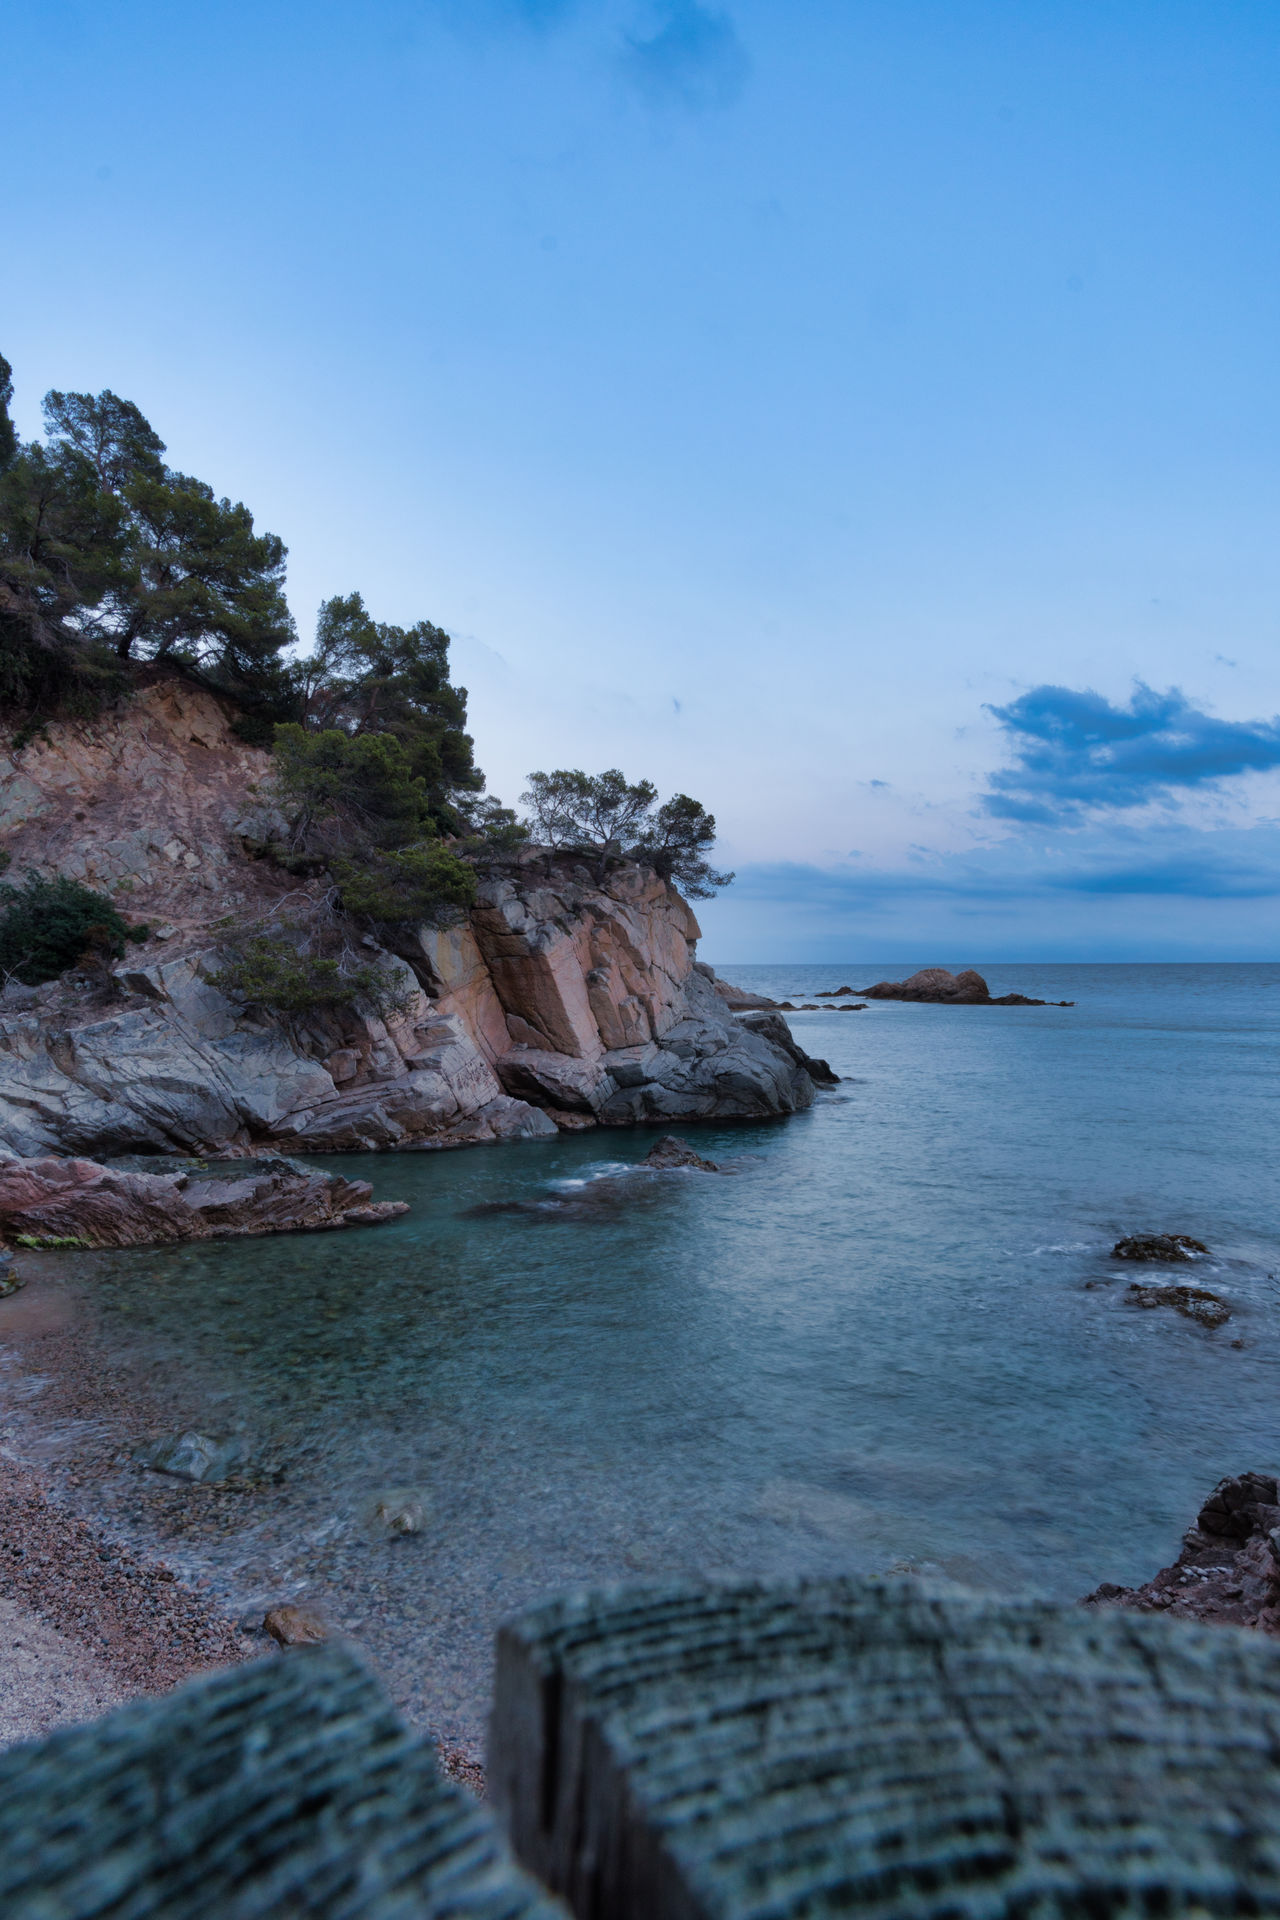 Beauty In Nature Day Horizon Over Water Long Exposure Nature No People Outdoors Rock - Object Rock Formation Scenics Sea Sky Tranquil Scene Tranquility Walimex 12mm Water